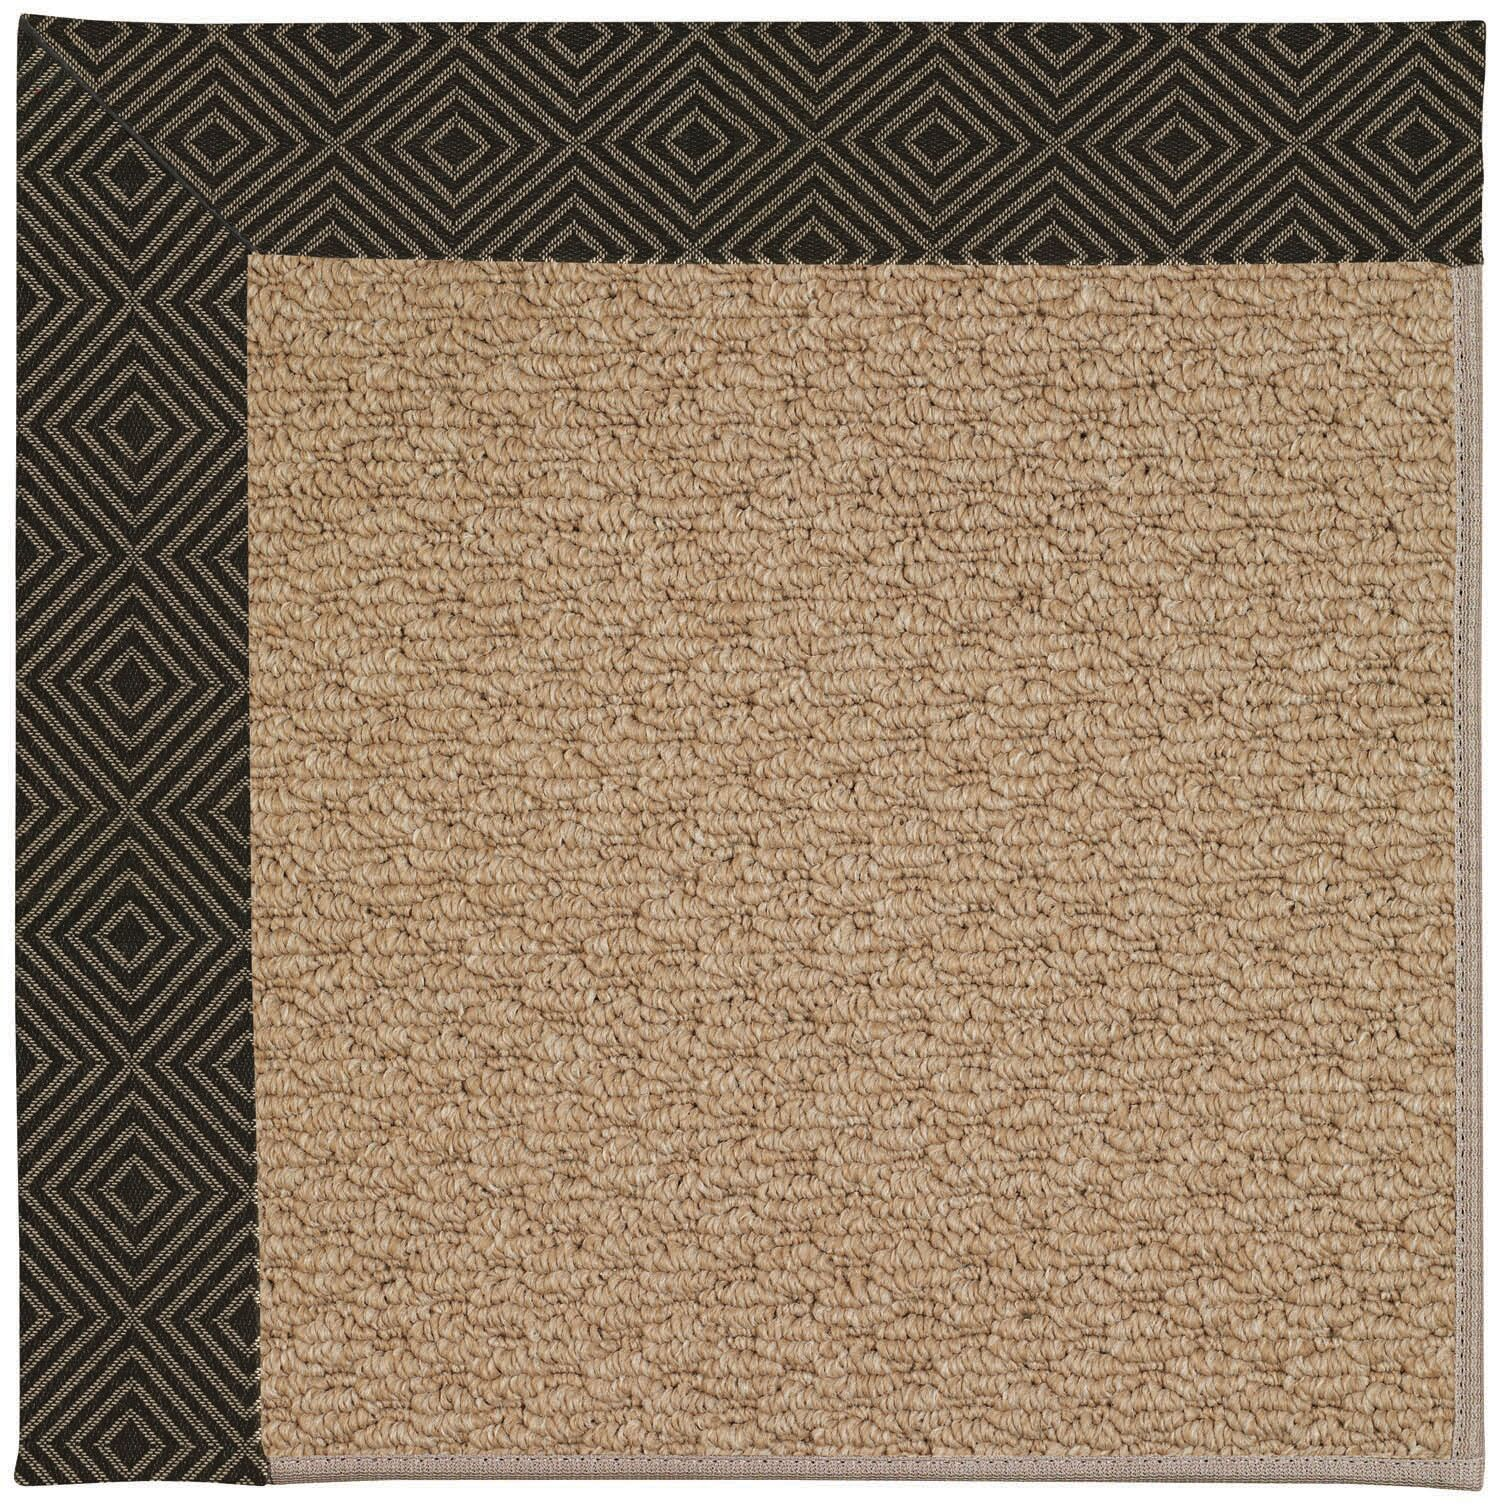 Lisle Machine Tufted Magma/Brown Indoor/Outdoor Area Rug Rug Size: Rectangle 10' x 14'